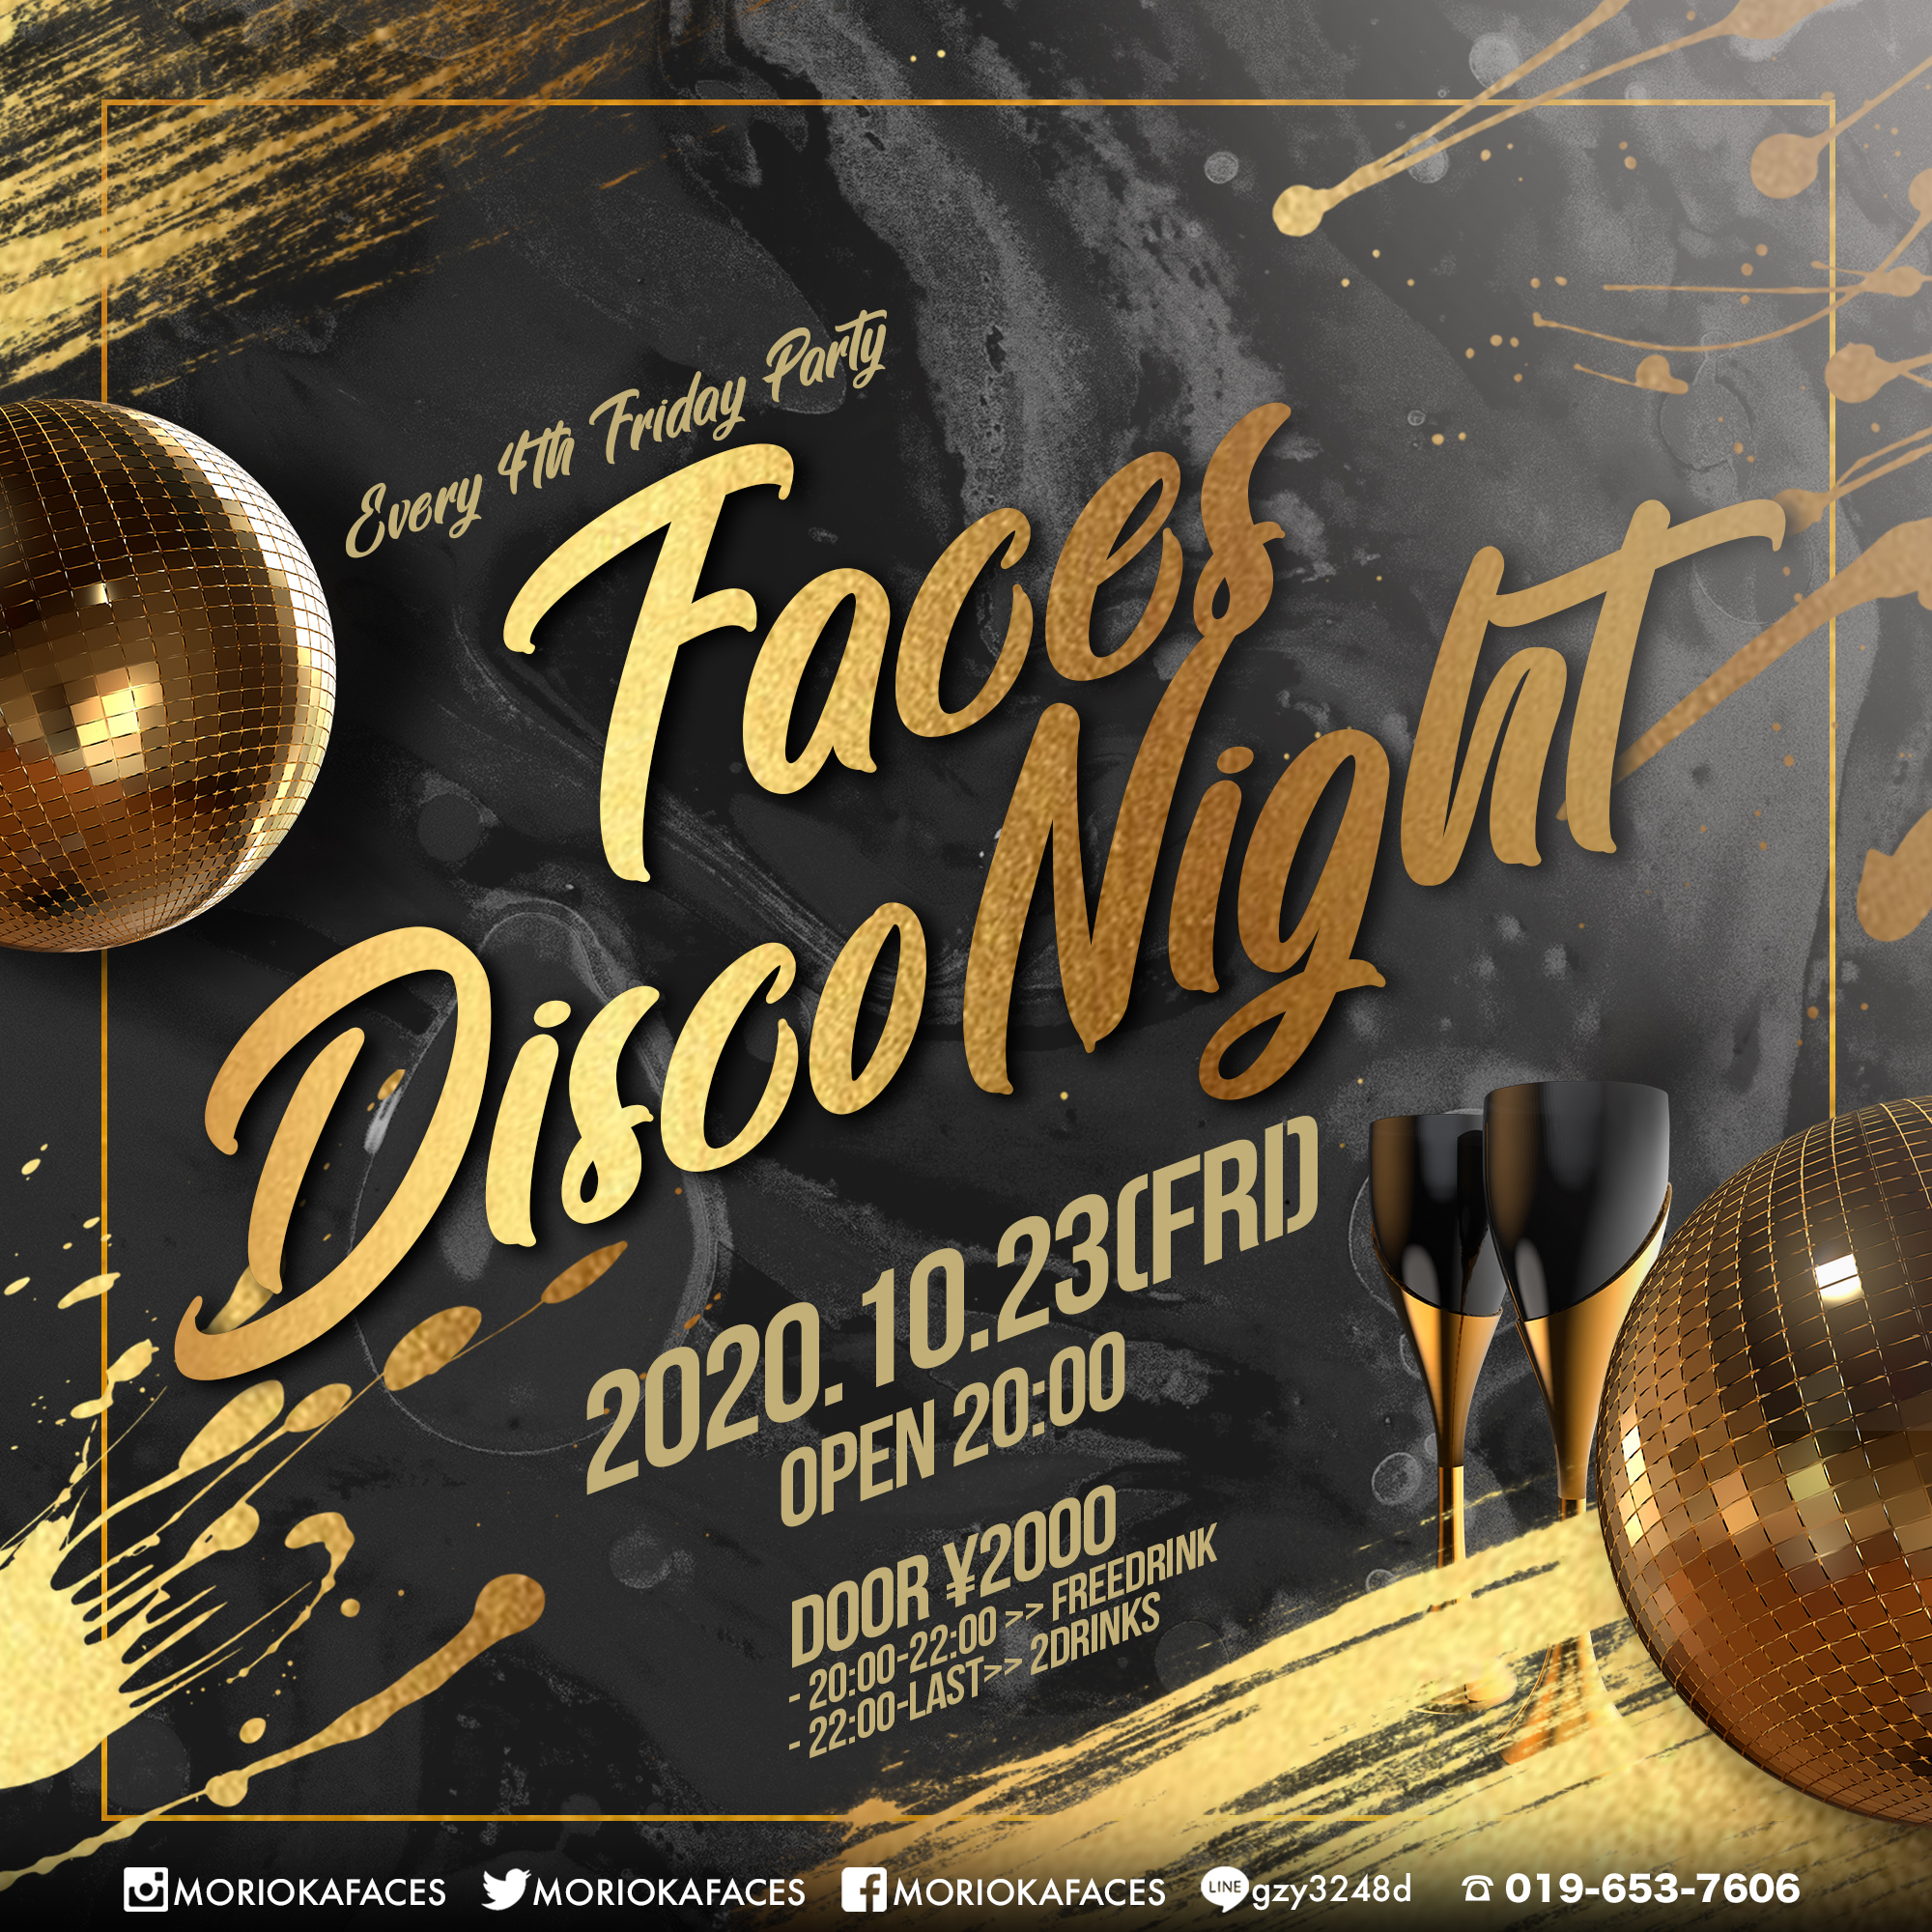 10.23(FRI) FACES DISCO NIGHT